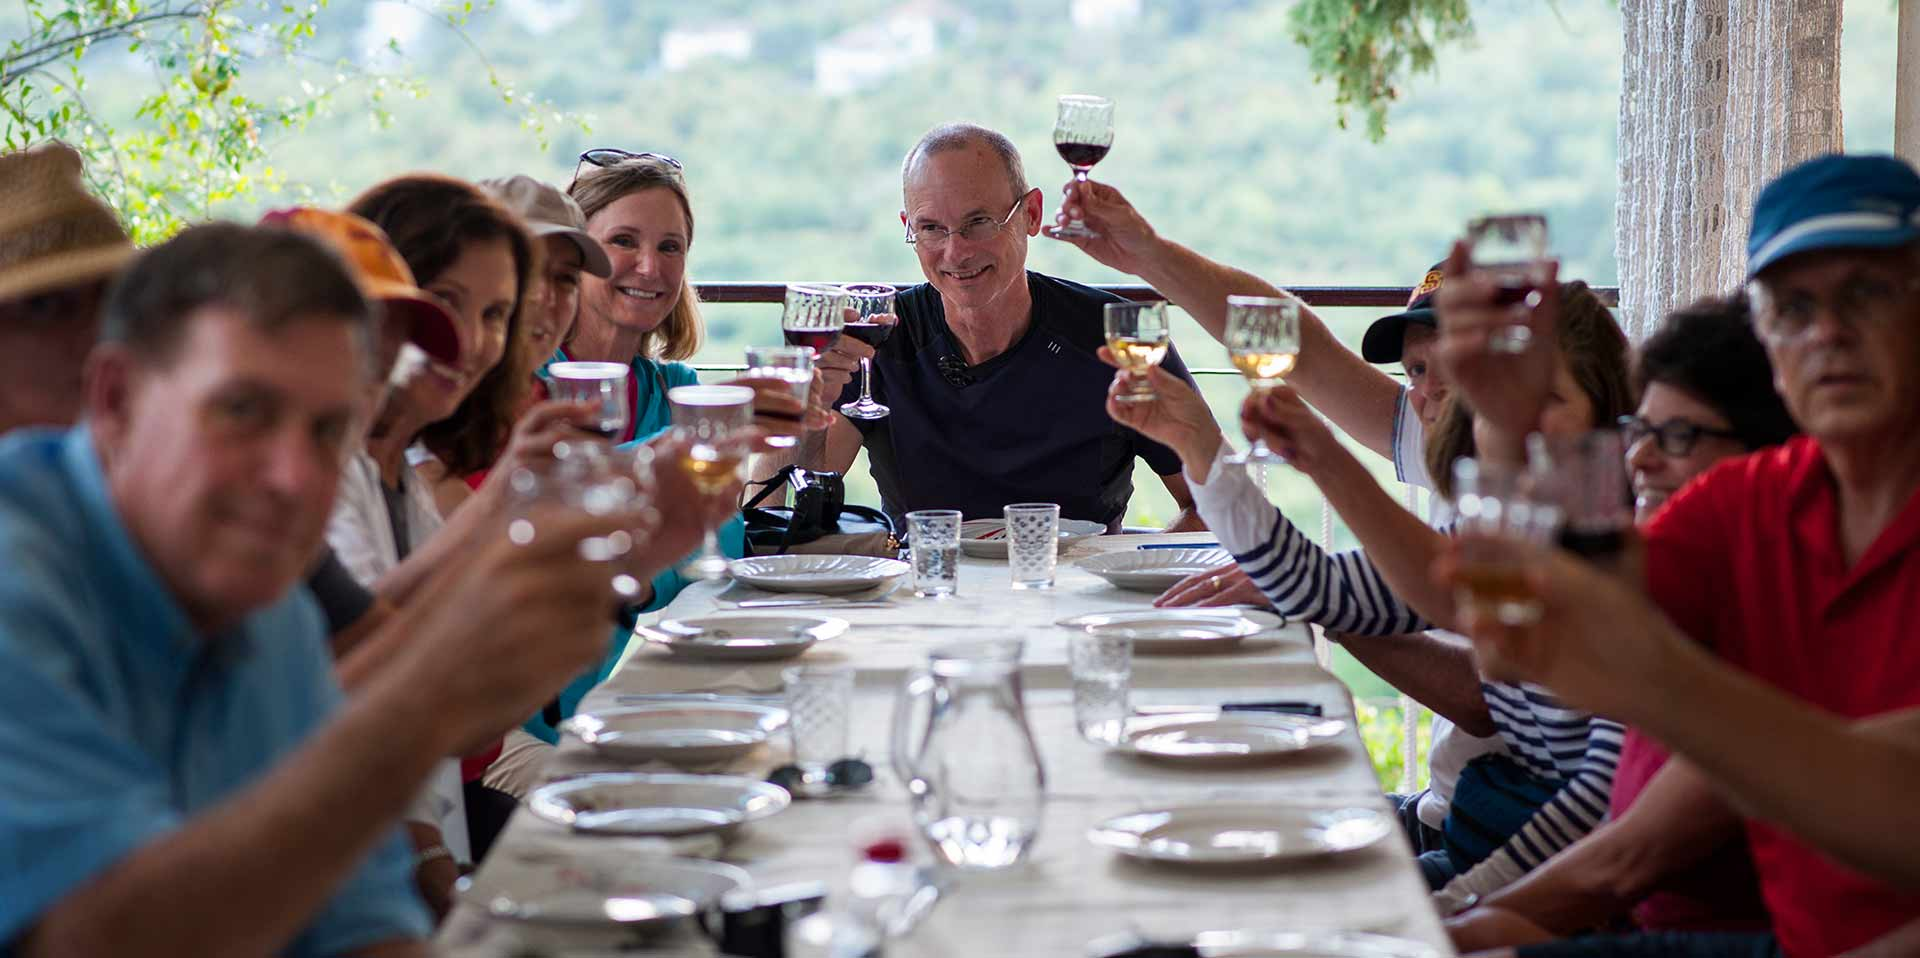 Europe Montenegro Image Dinner Cheers Beautiful Luxurious Travel Tour - luxury vacation destinations